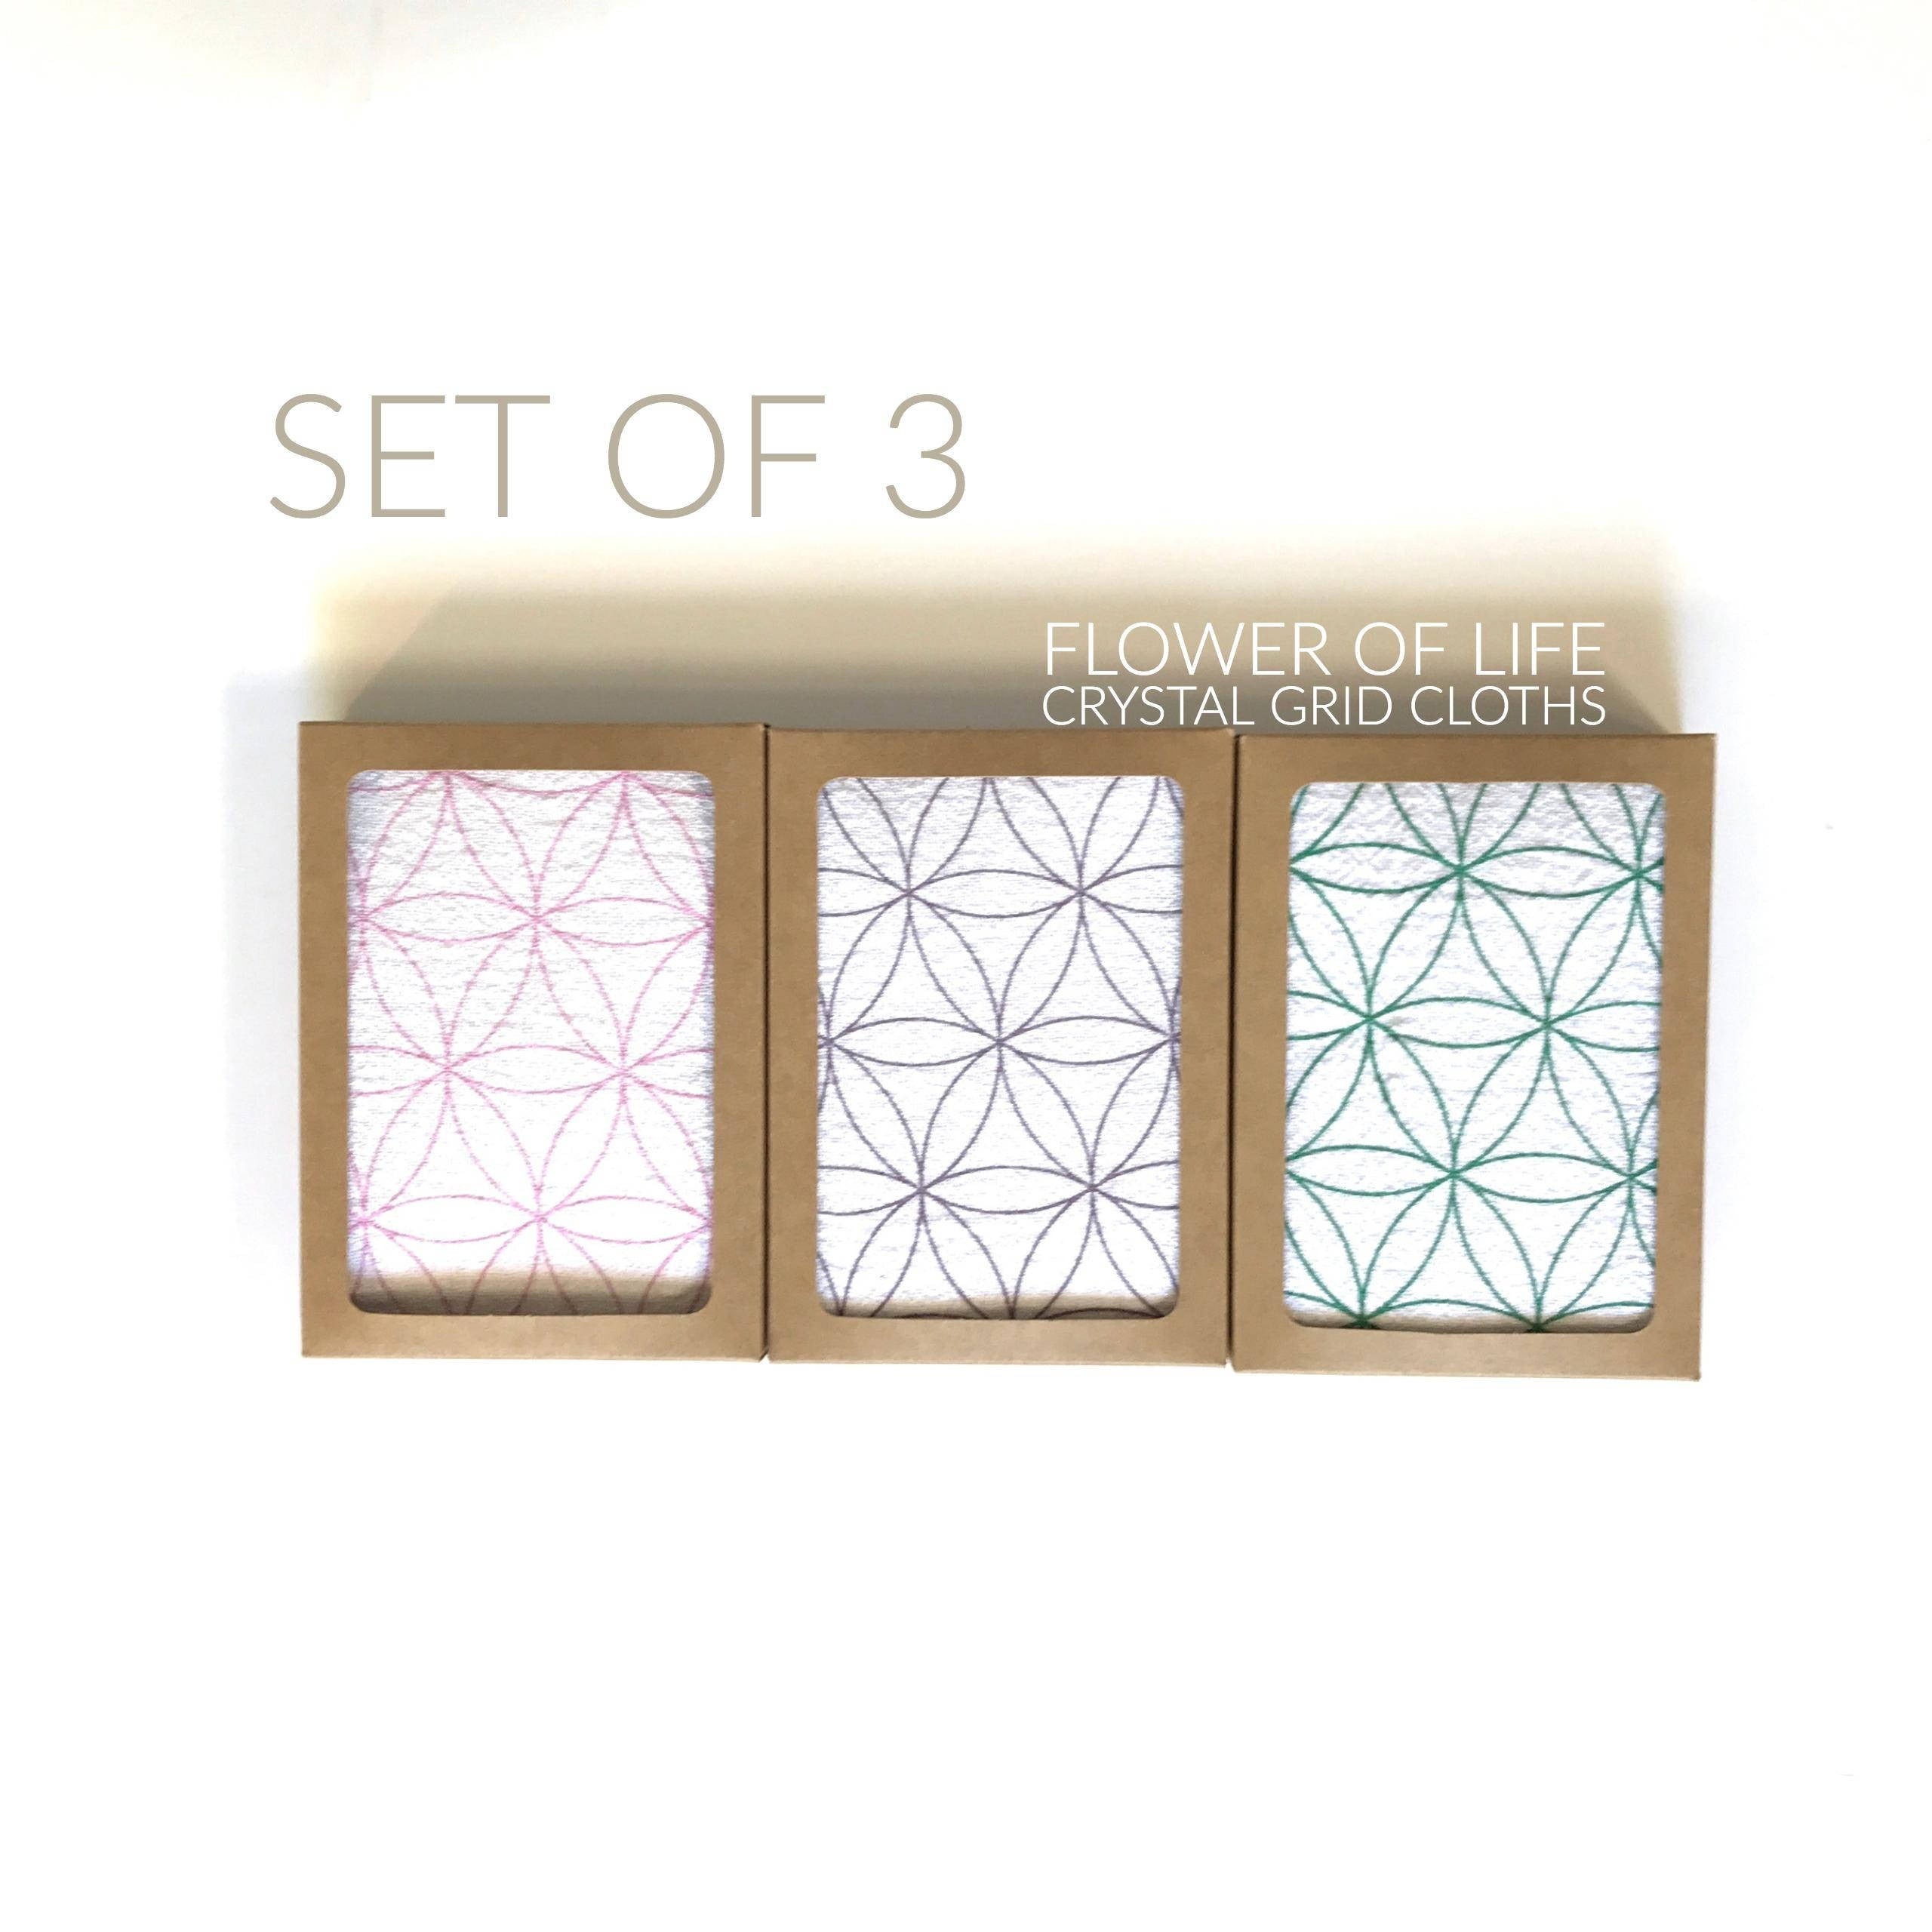 CRYSTAL GRID CLOTHS Set Of 3 Flower Life 100 Cotton All Natural Sacred Geometry Grid Templates